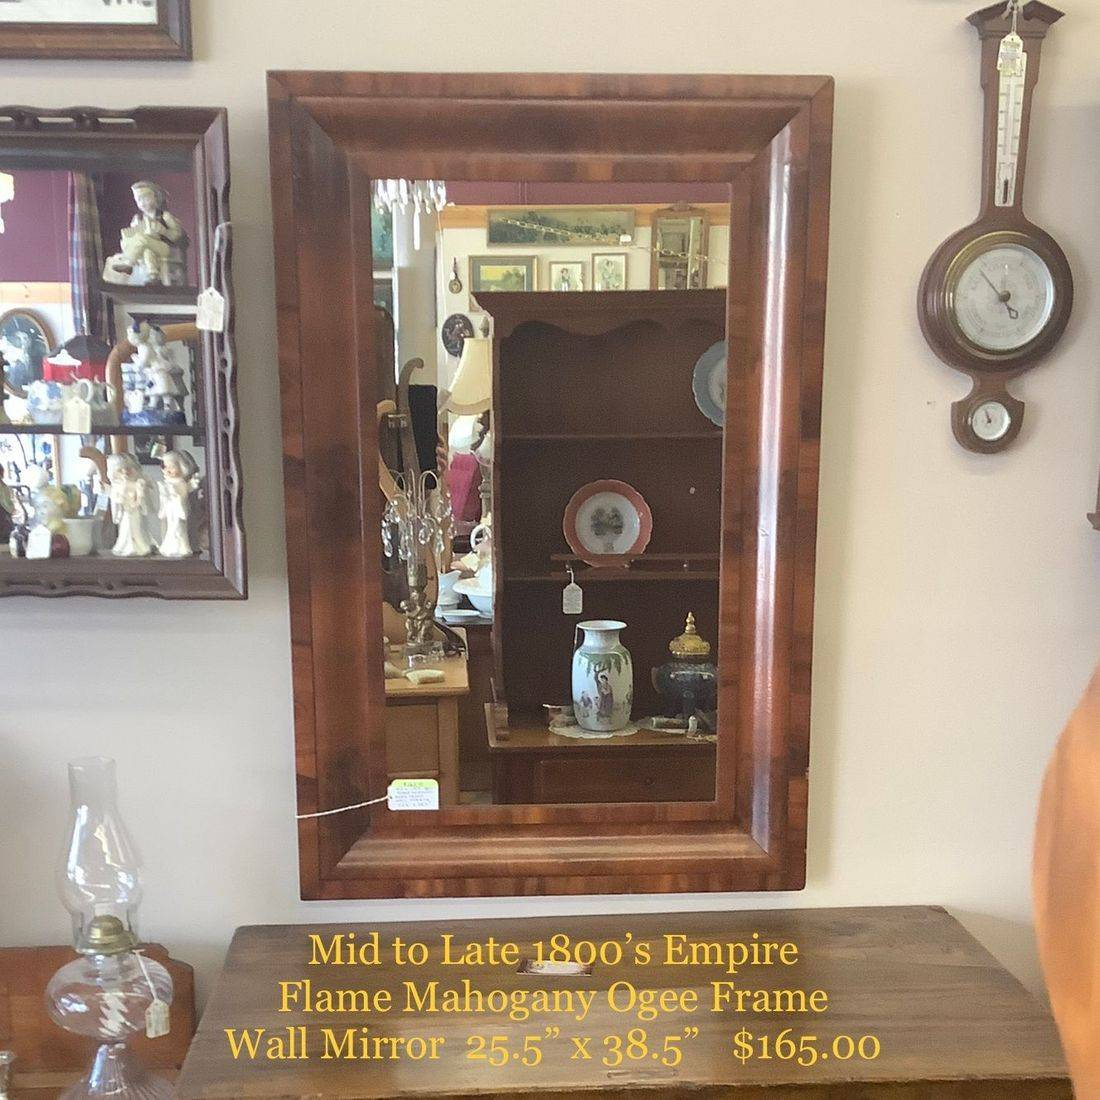 Mid to Late 1800's Empire Flame Mahogany Ogee Frame Wall Mirror   $165.00